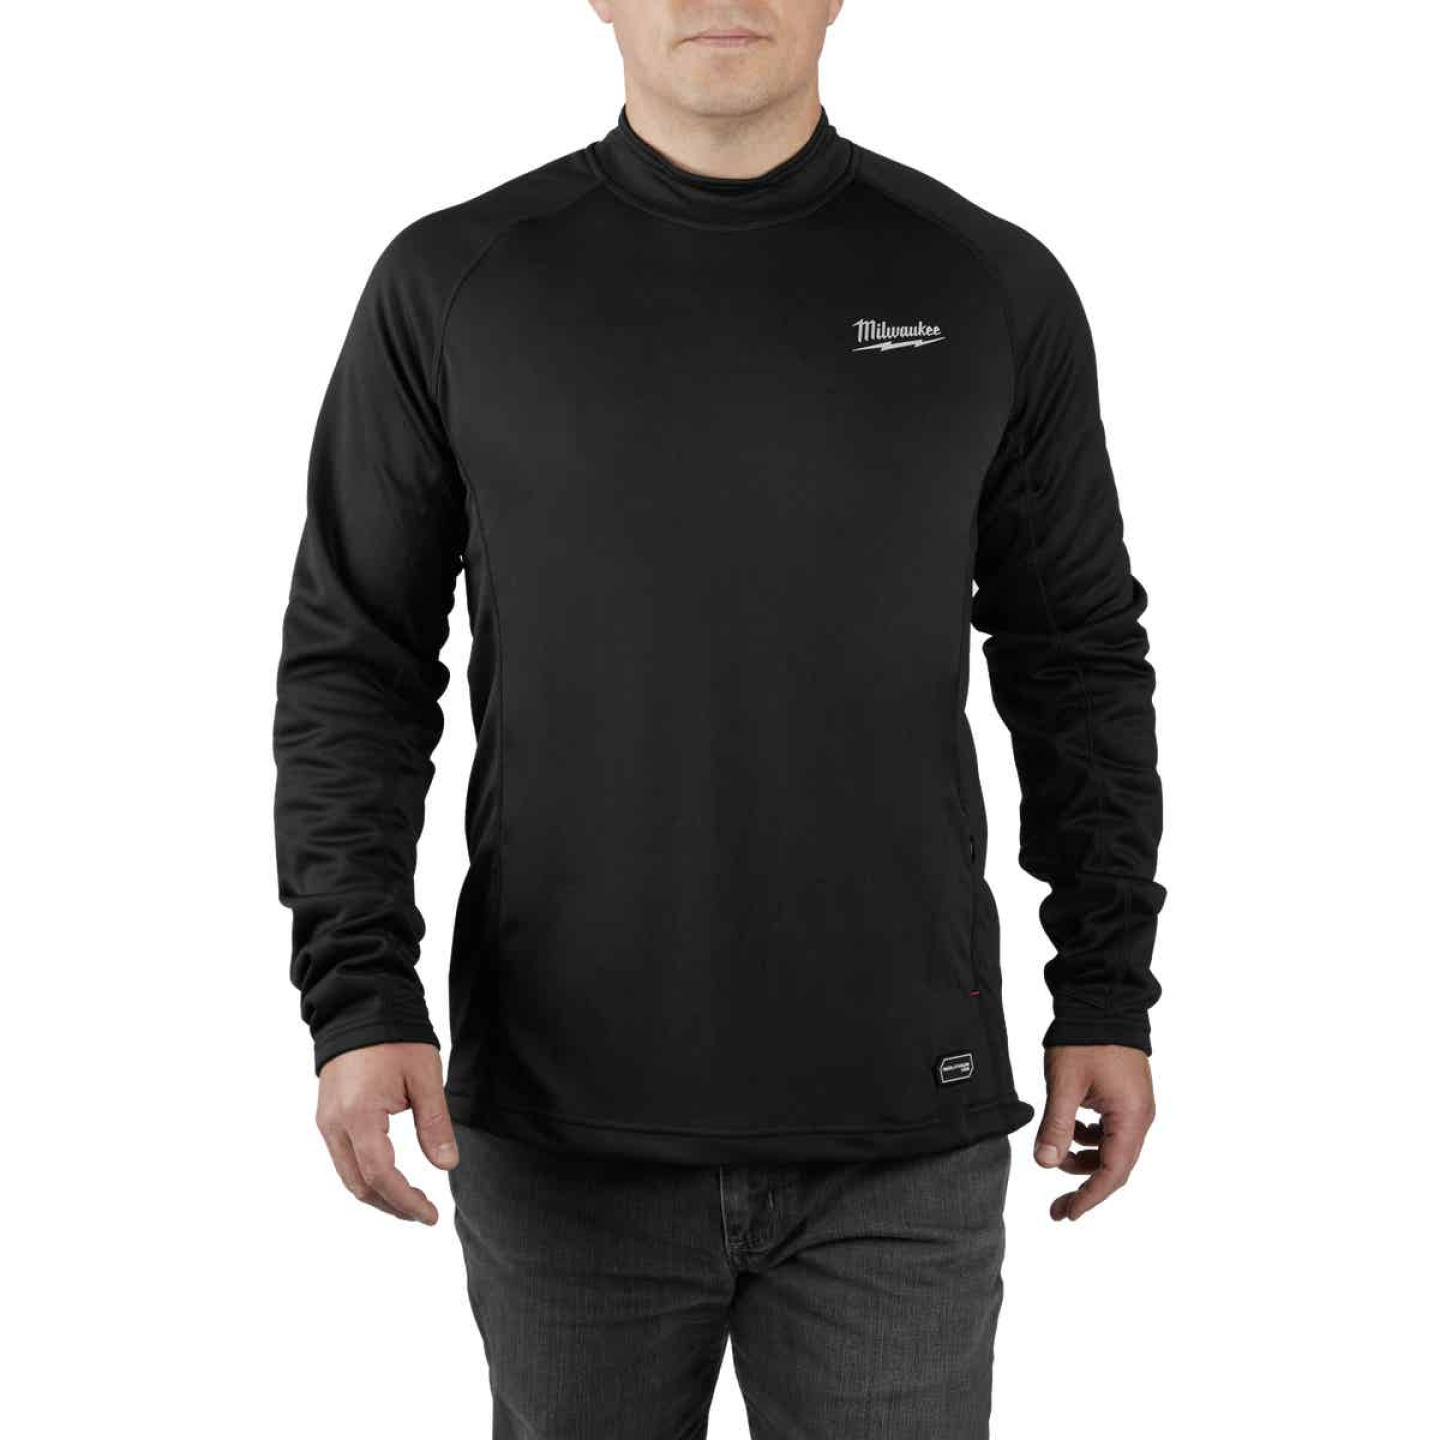 Milwaukee Workskin Medium Black Heated Midweight Base Layer Shirt Image 4